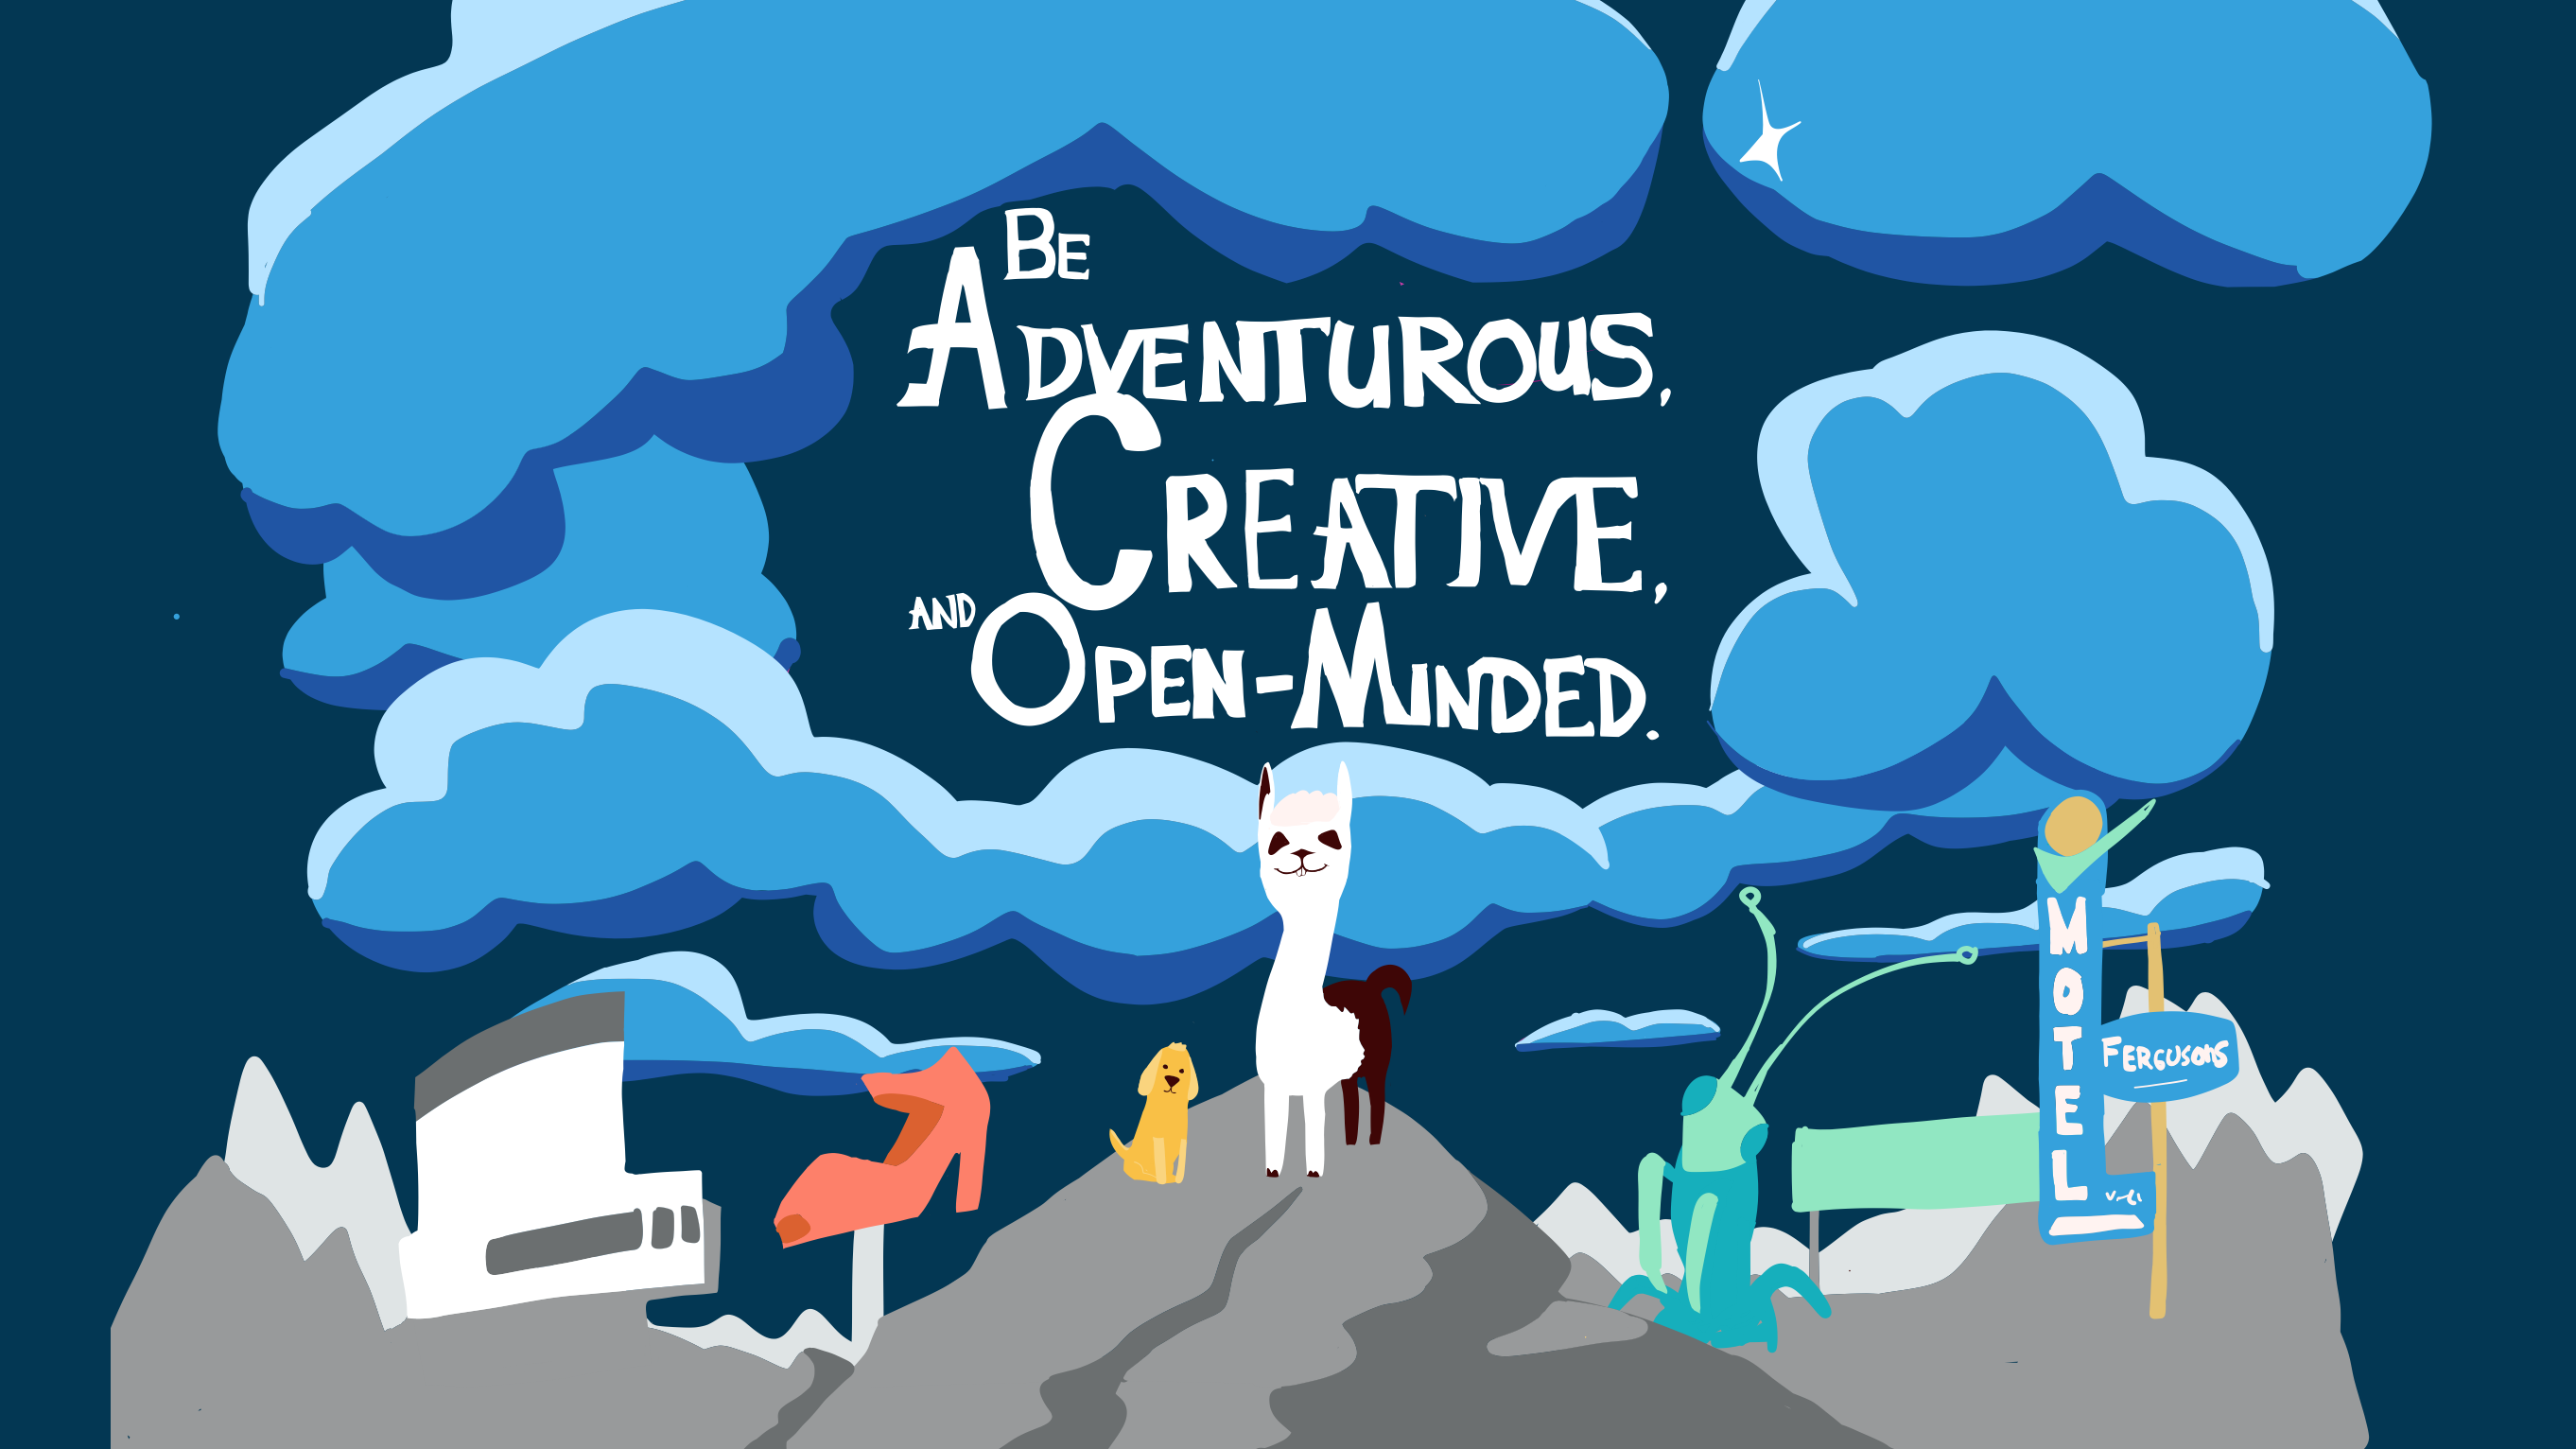 Core Value #4: Be Adventurous, Creative and Open-Minded